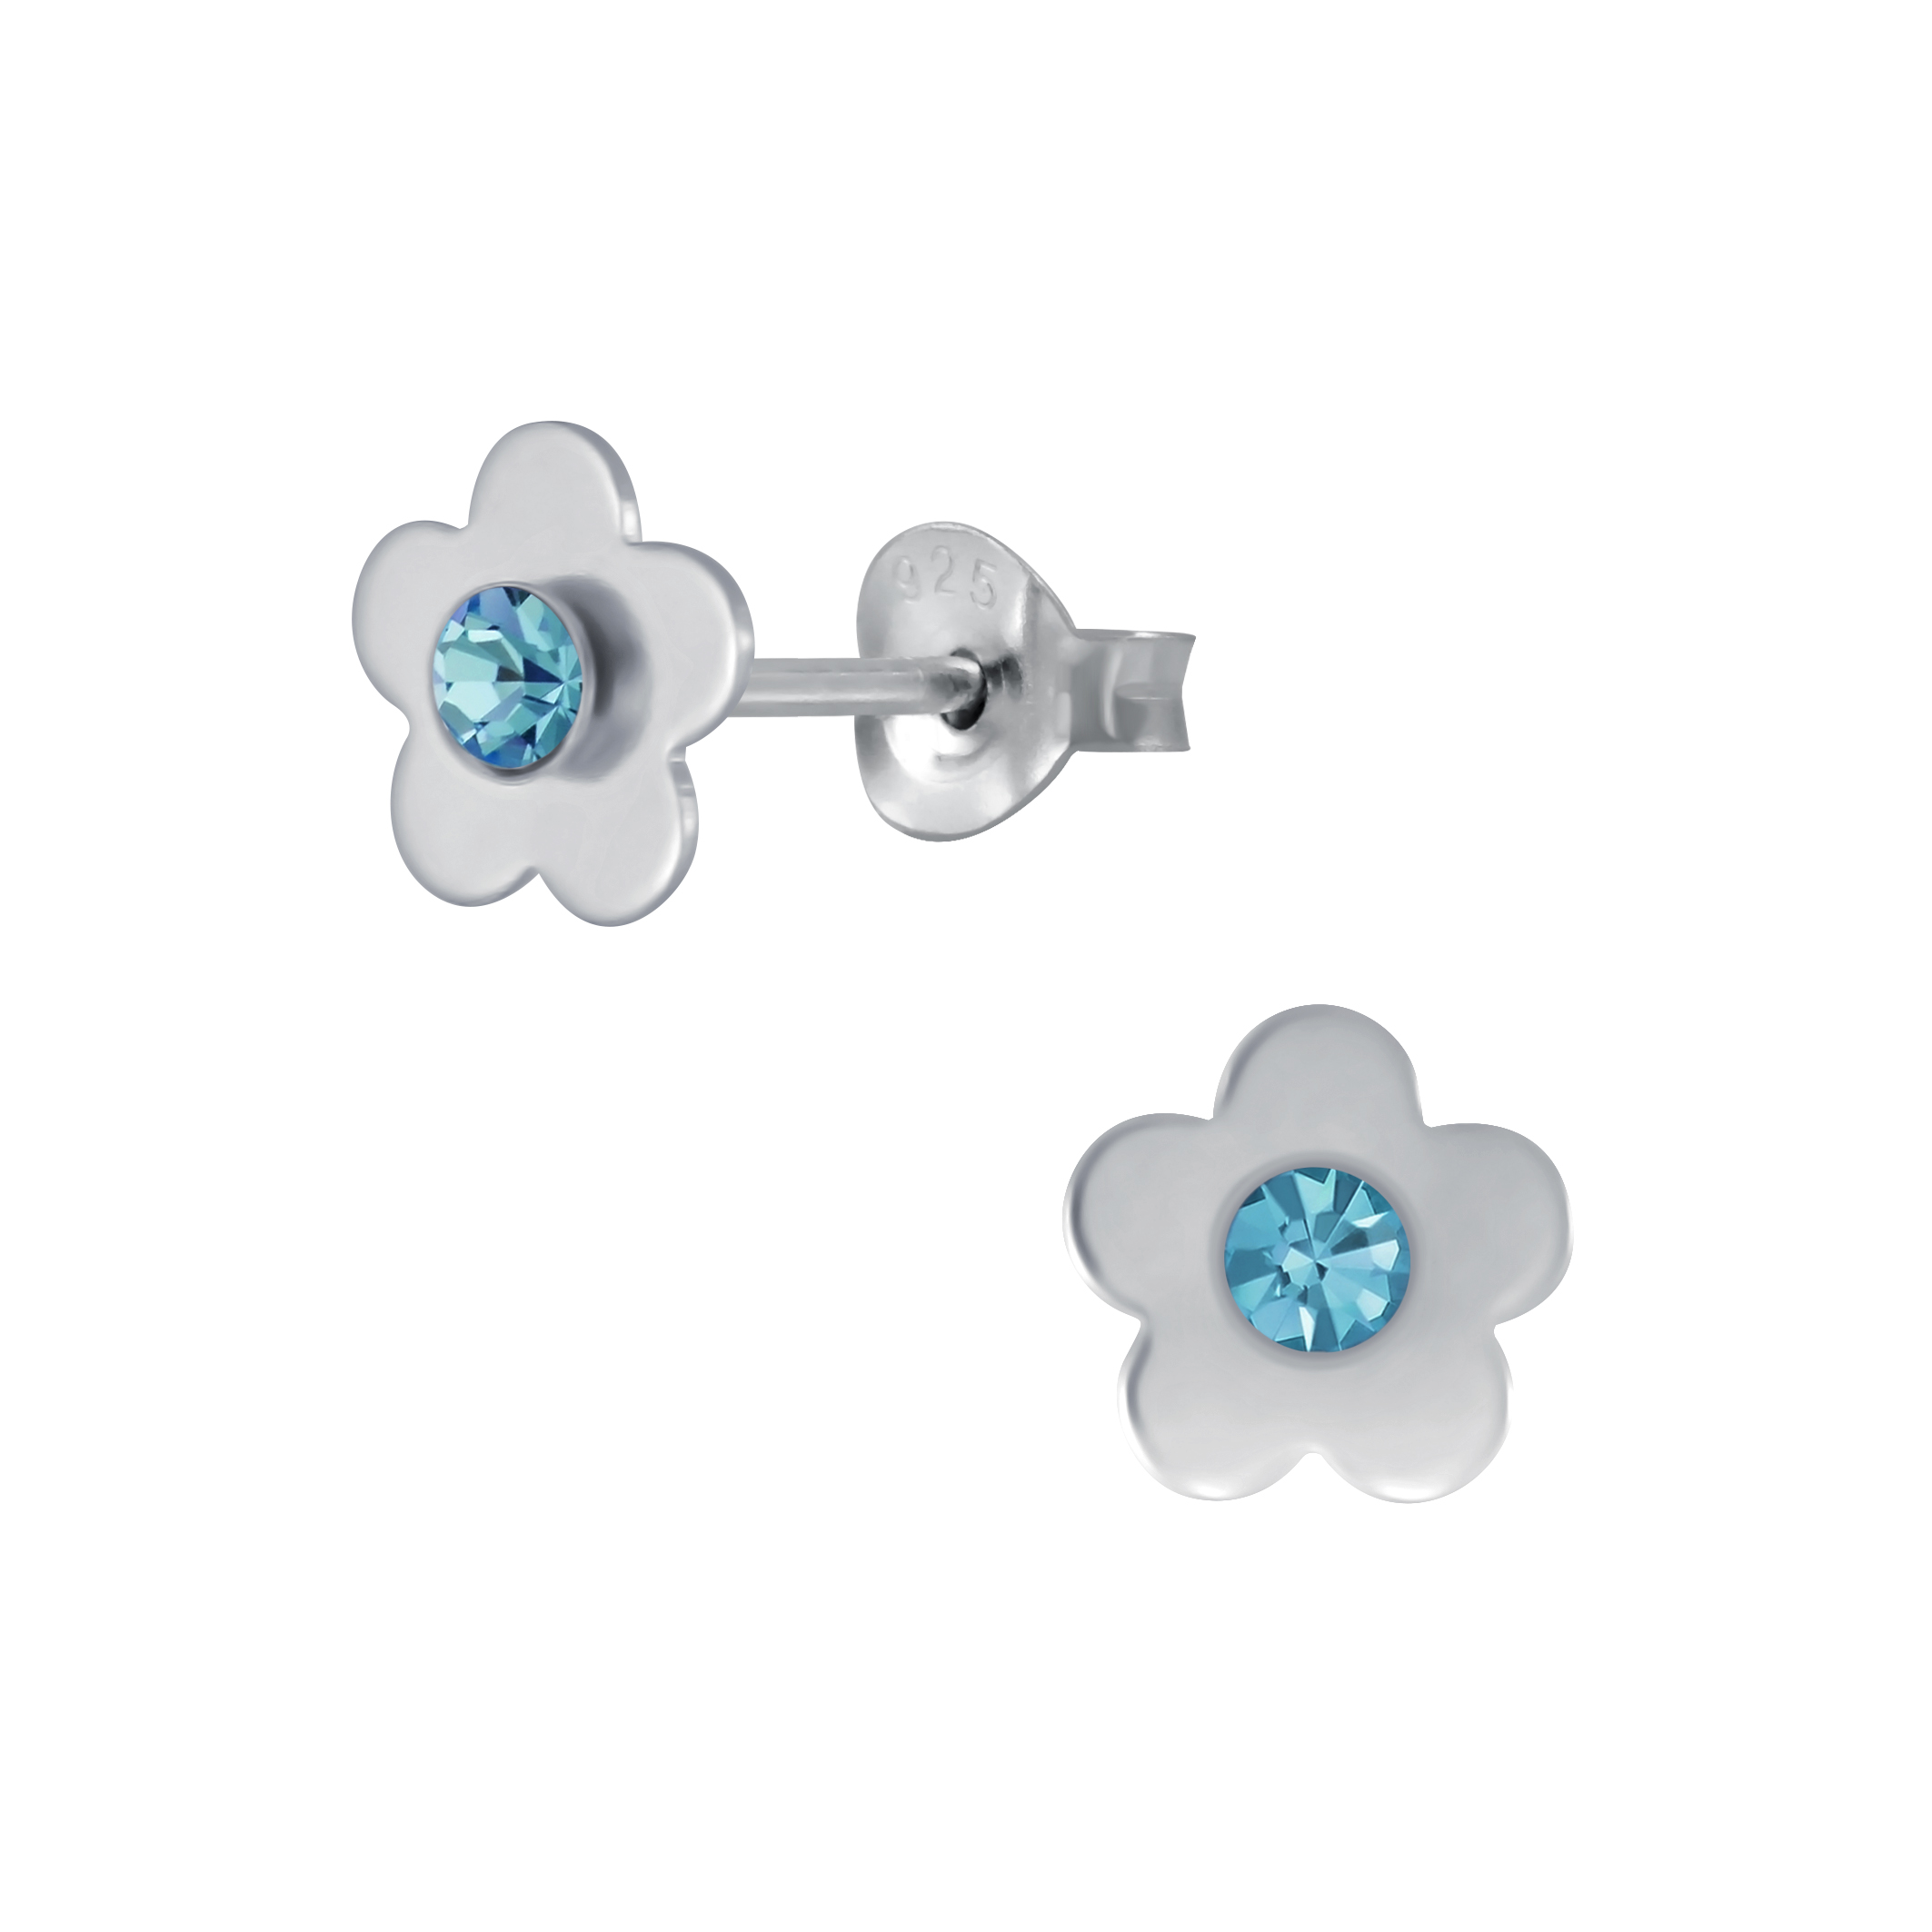 flower stud earrings with blue crystal center